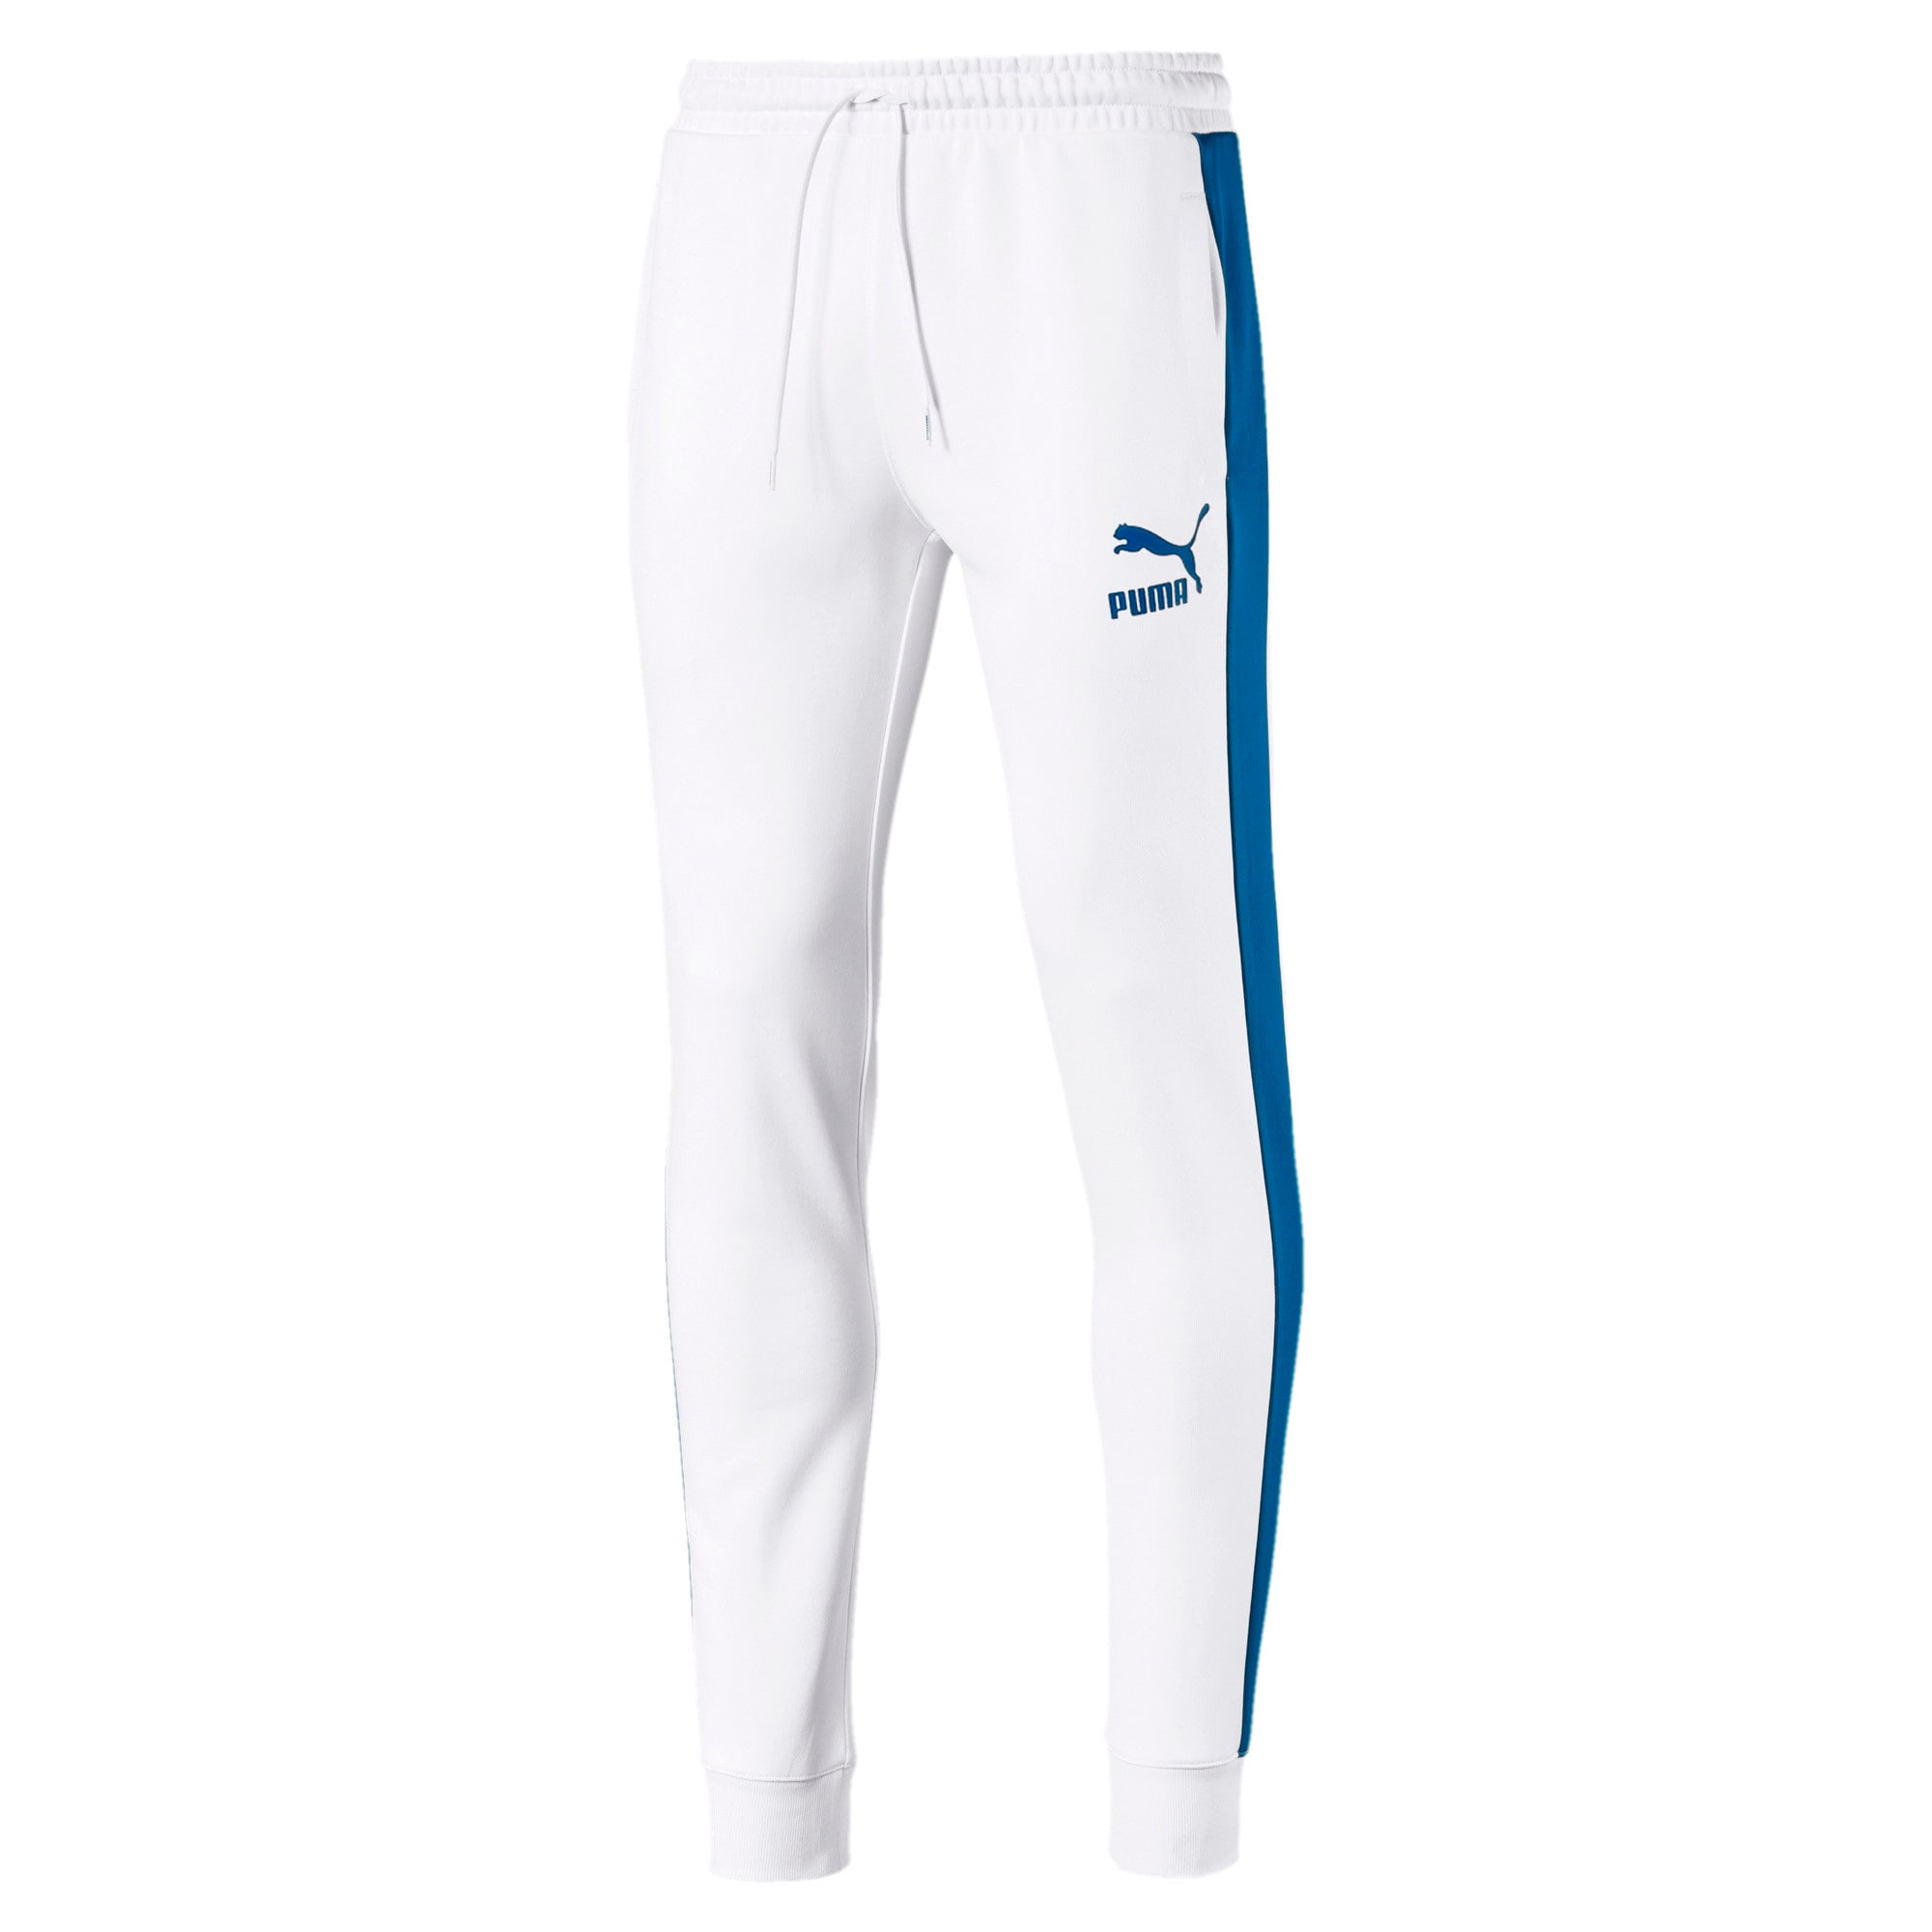 Thumbnail 1 of Iconic T7 Herren Gestrickte Sweatpants, Puma White, medium